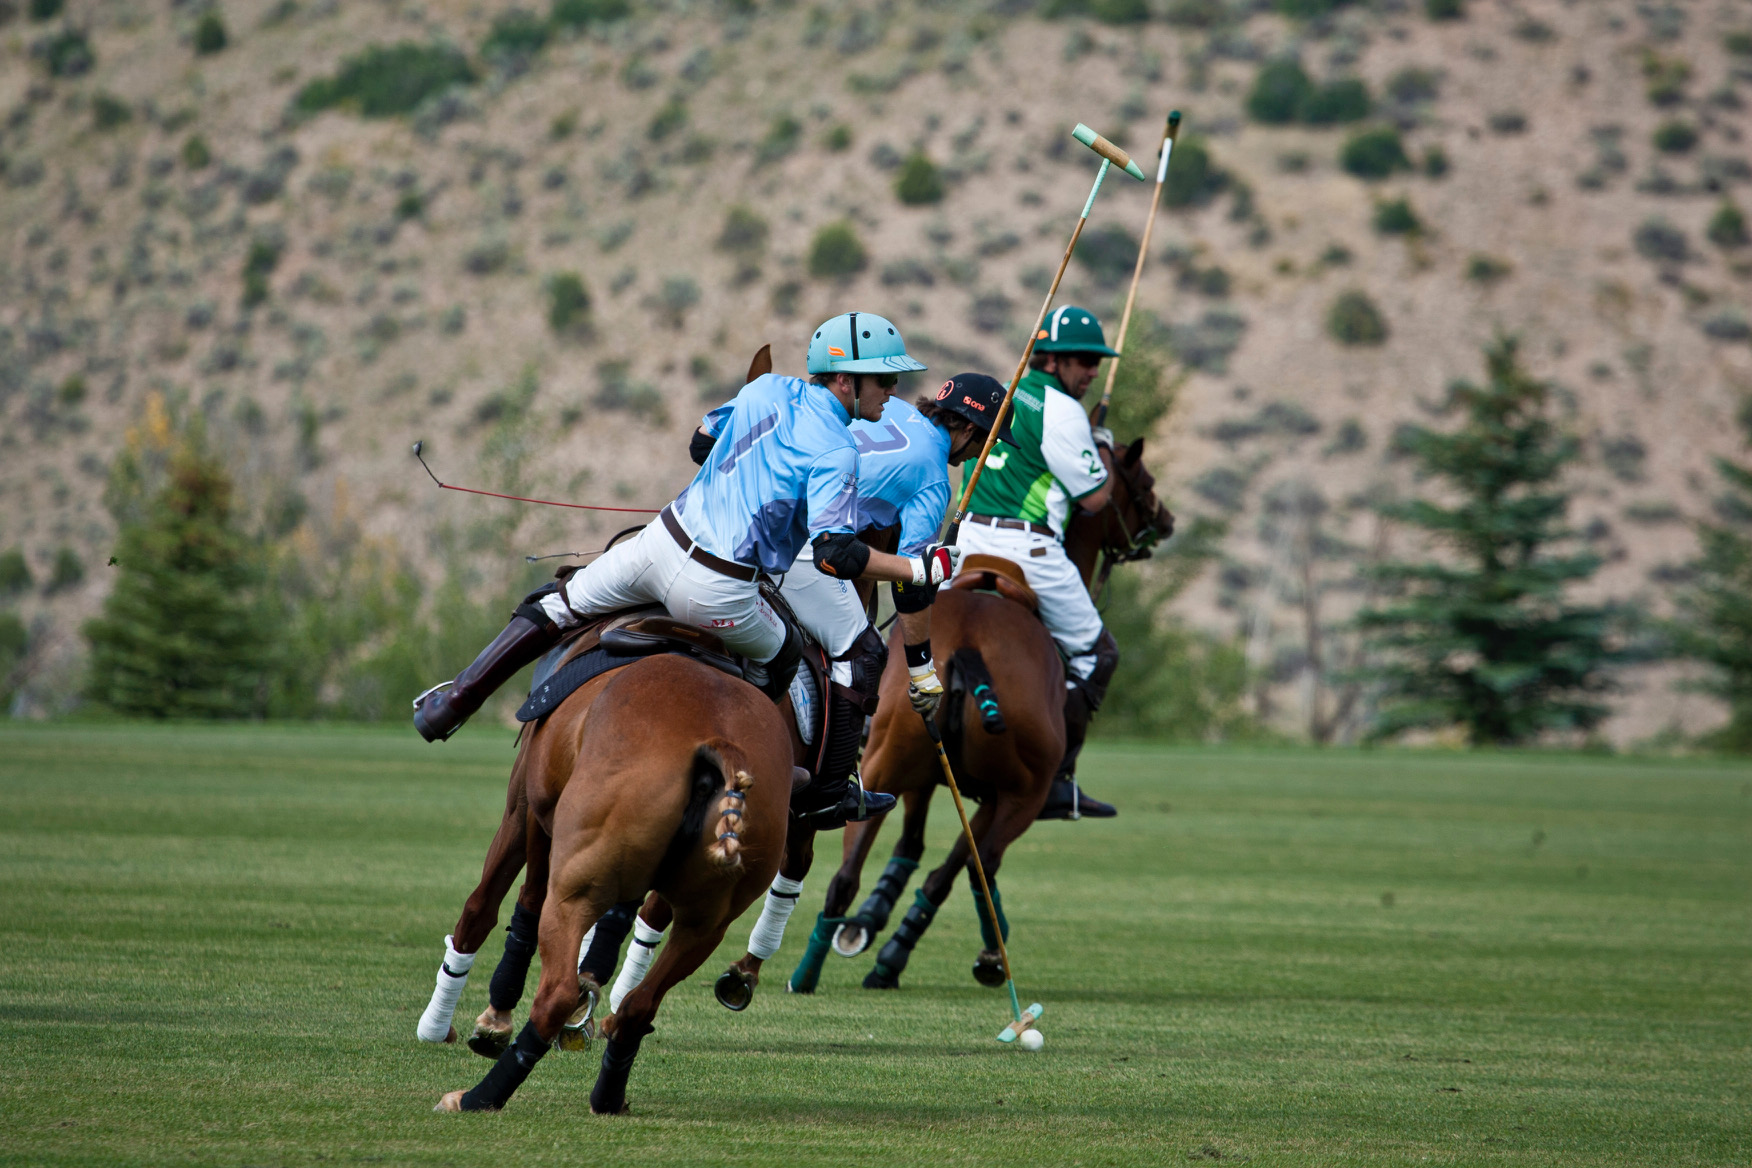 Team USPA's Grant Ganzi and other player.JPG